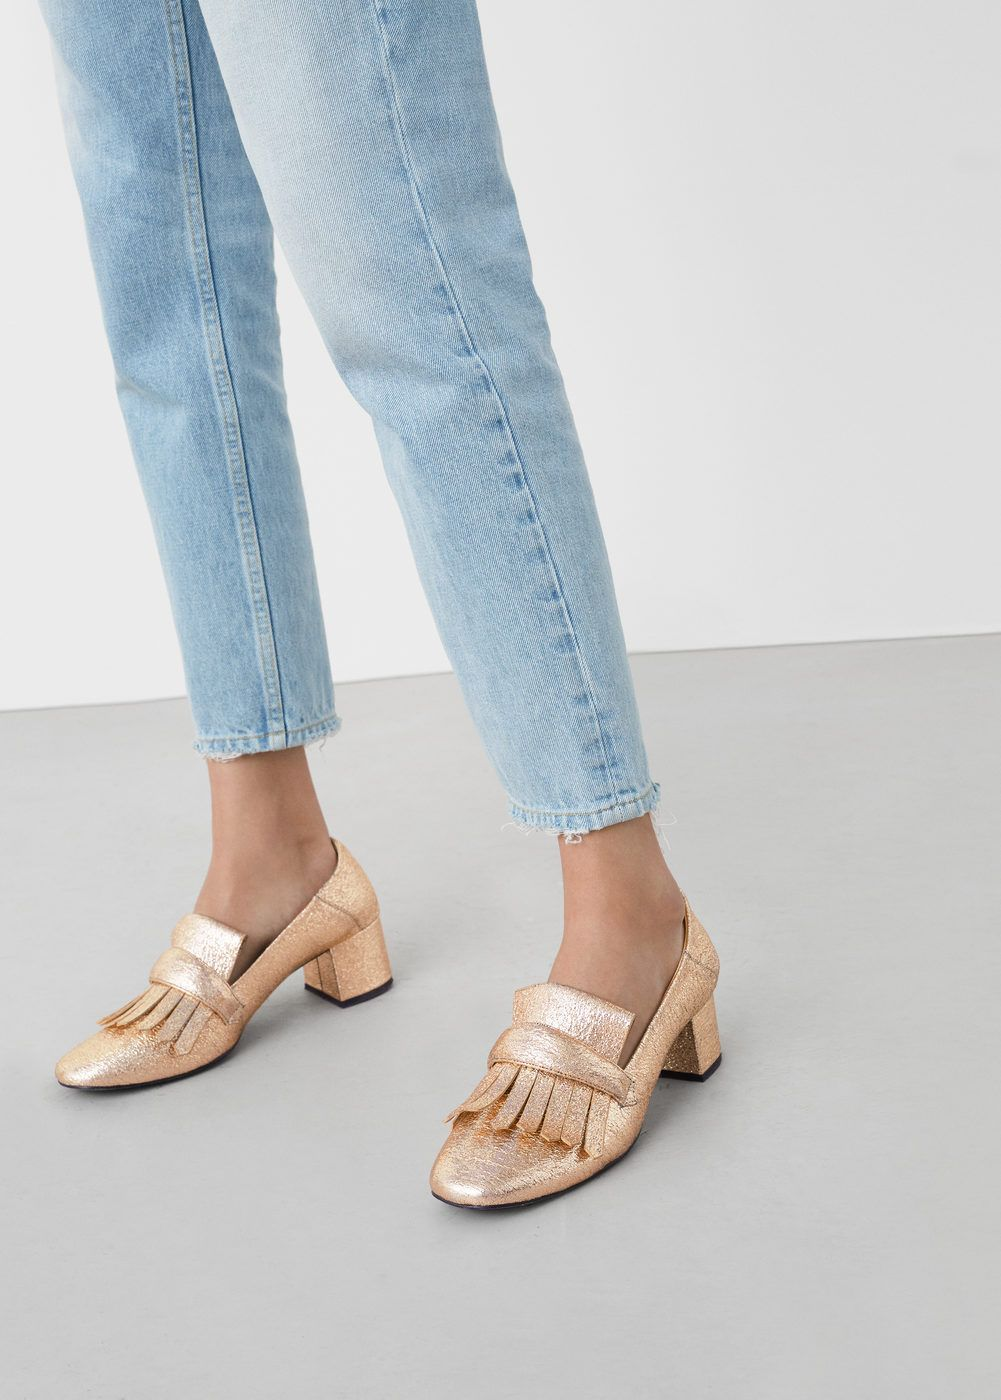 Metallic heel loafer